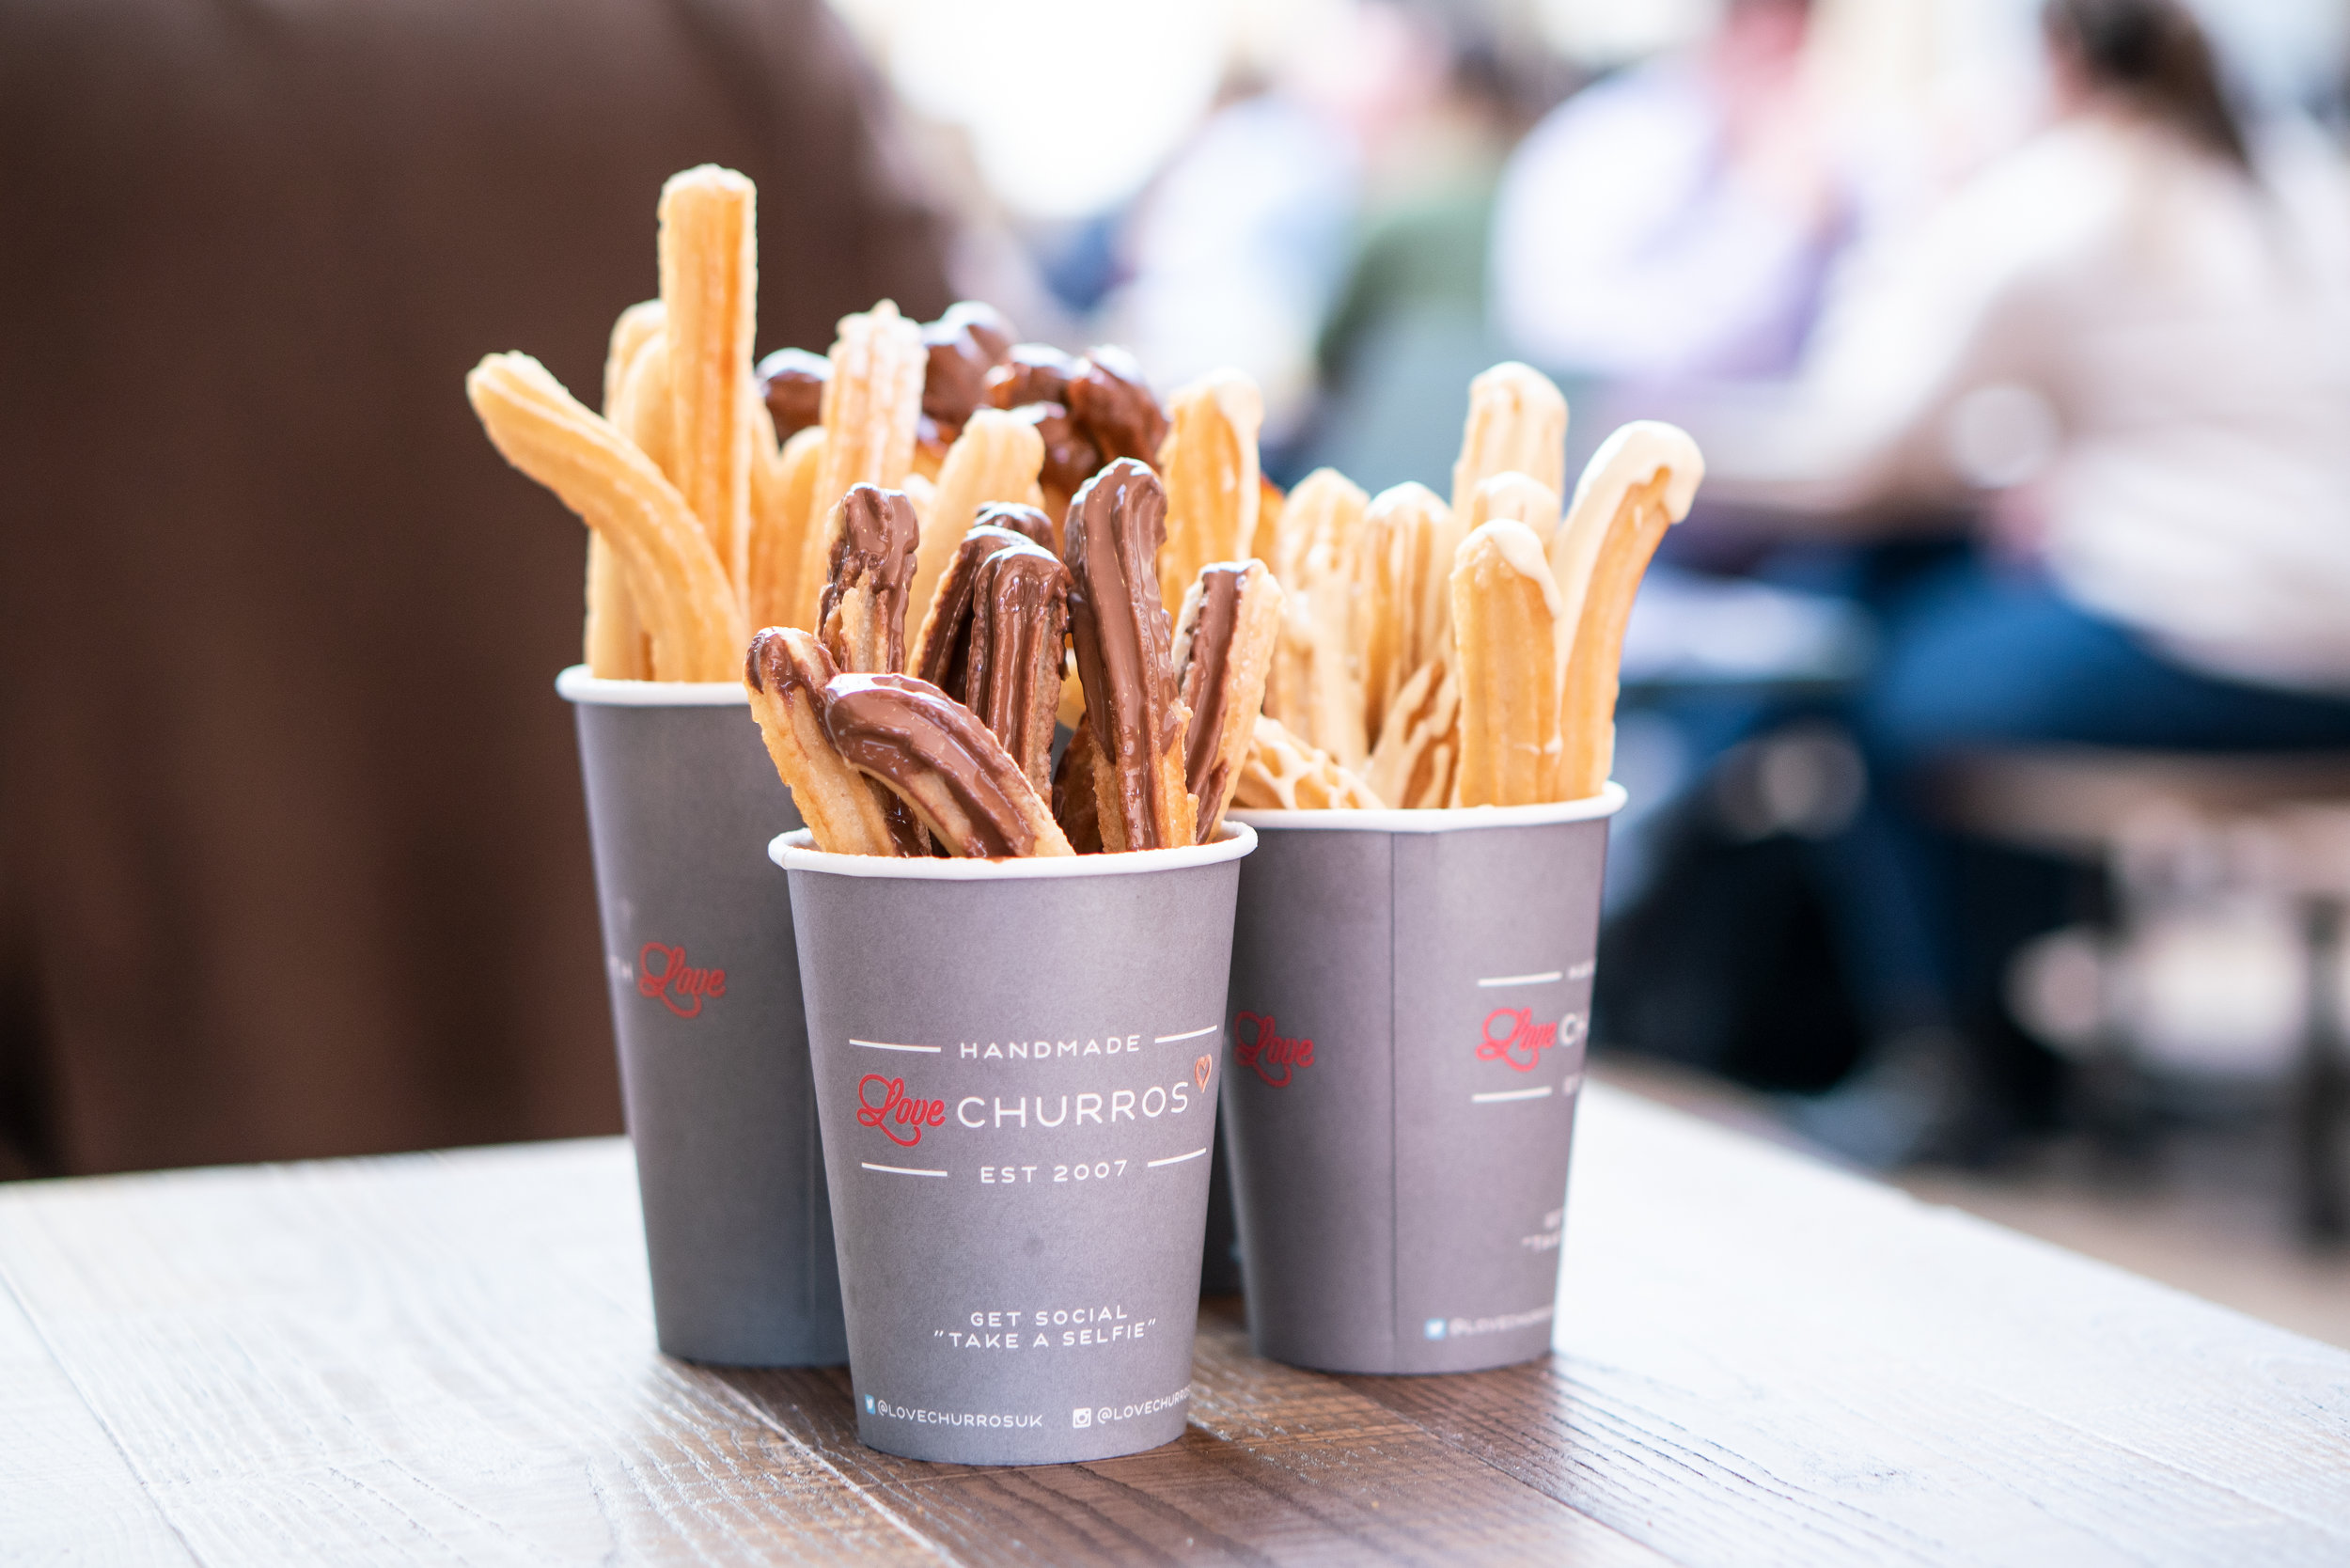 lovechurros_2102_119 copy.jpg